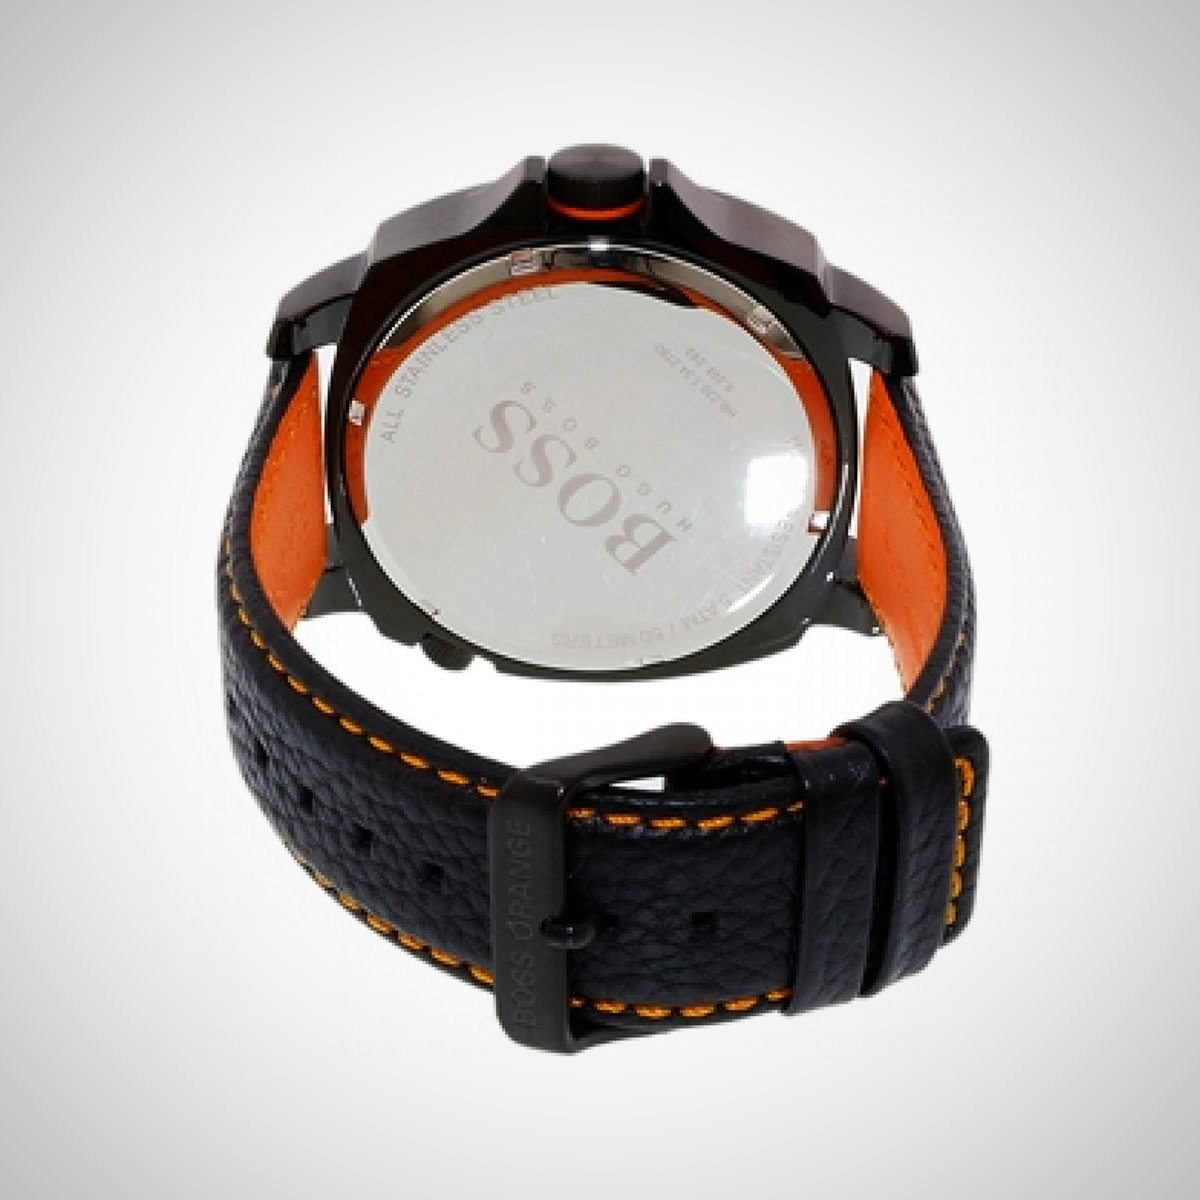 Hugo Boss Orange 1513221 Men's Black Leather Watch